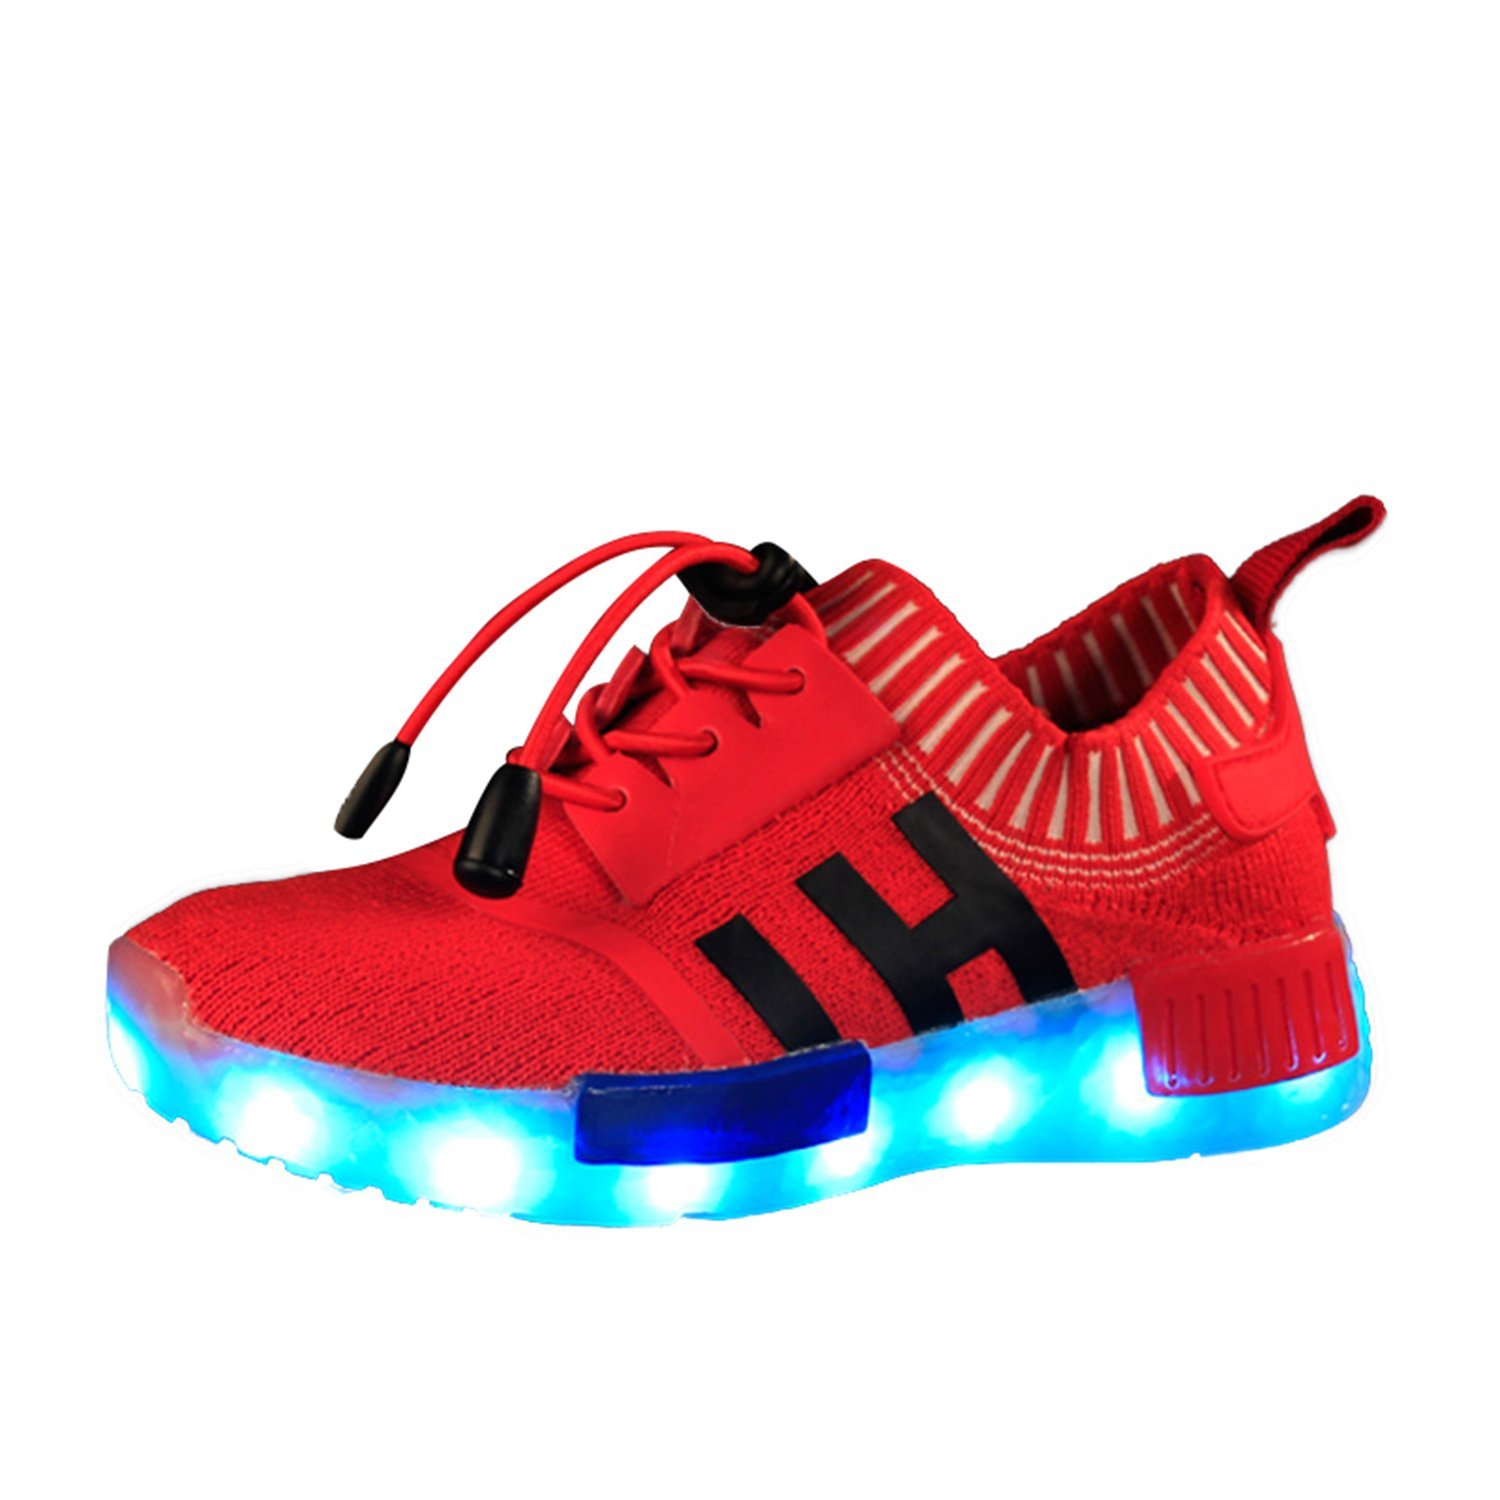 BININBOX Kids Boys Girls Mesh Breathable LED Light USB Charging Fashion Sneakers 3.5 M Big Kid, Red